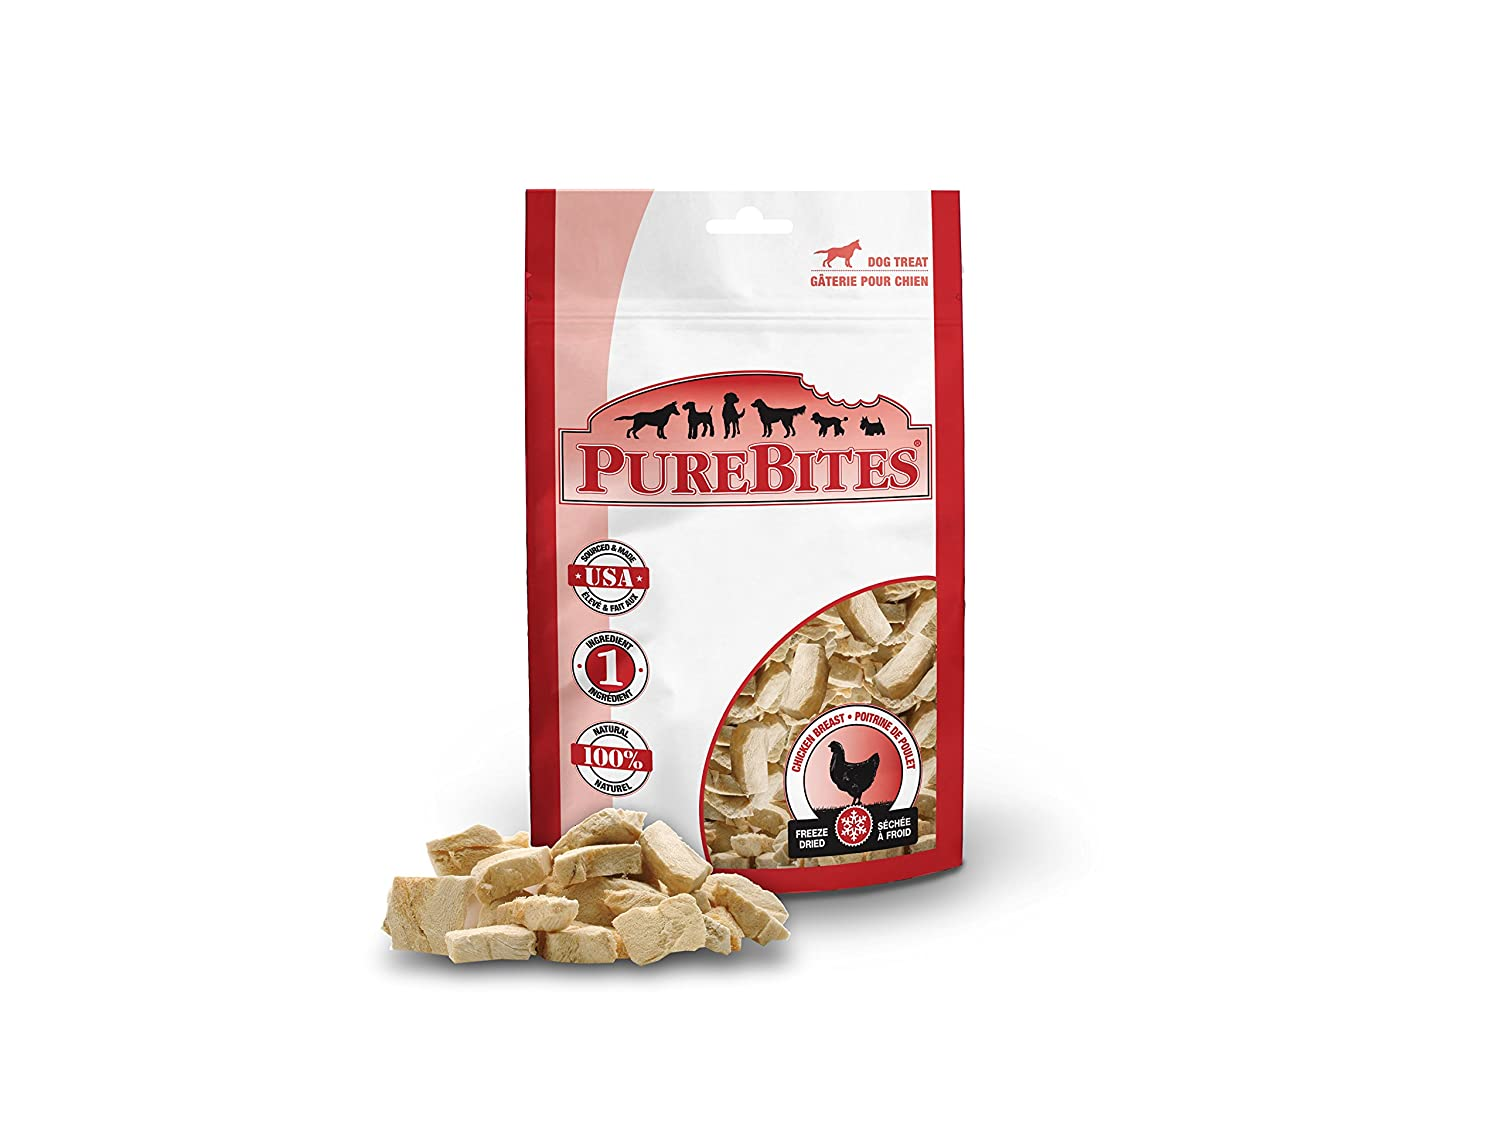 Purebites Chicken Breast For Dogs, 1.4Oz 40G – Entry Size, 32 Pack